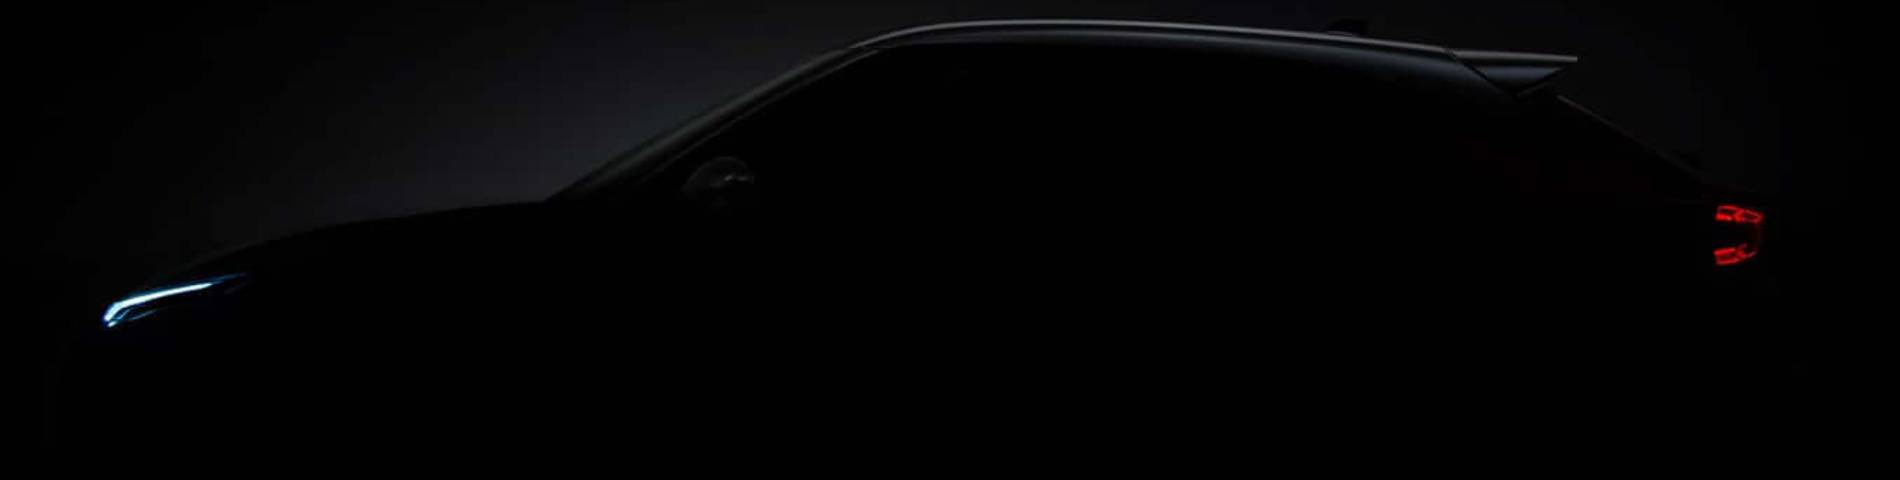 2020 Nissan Juke Teaser side view